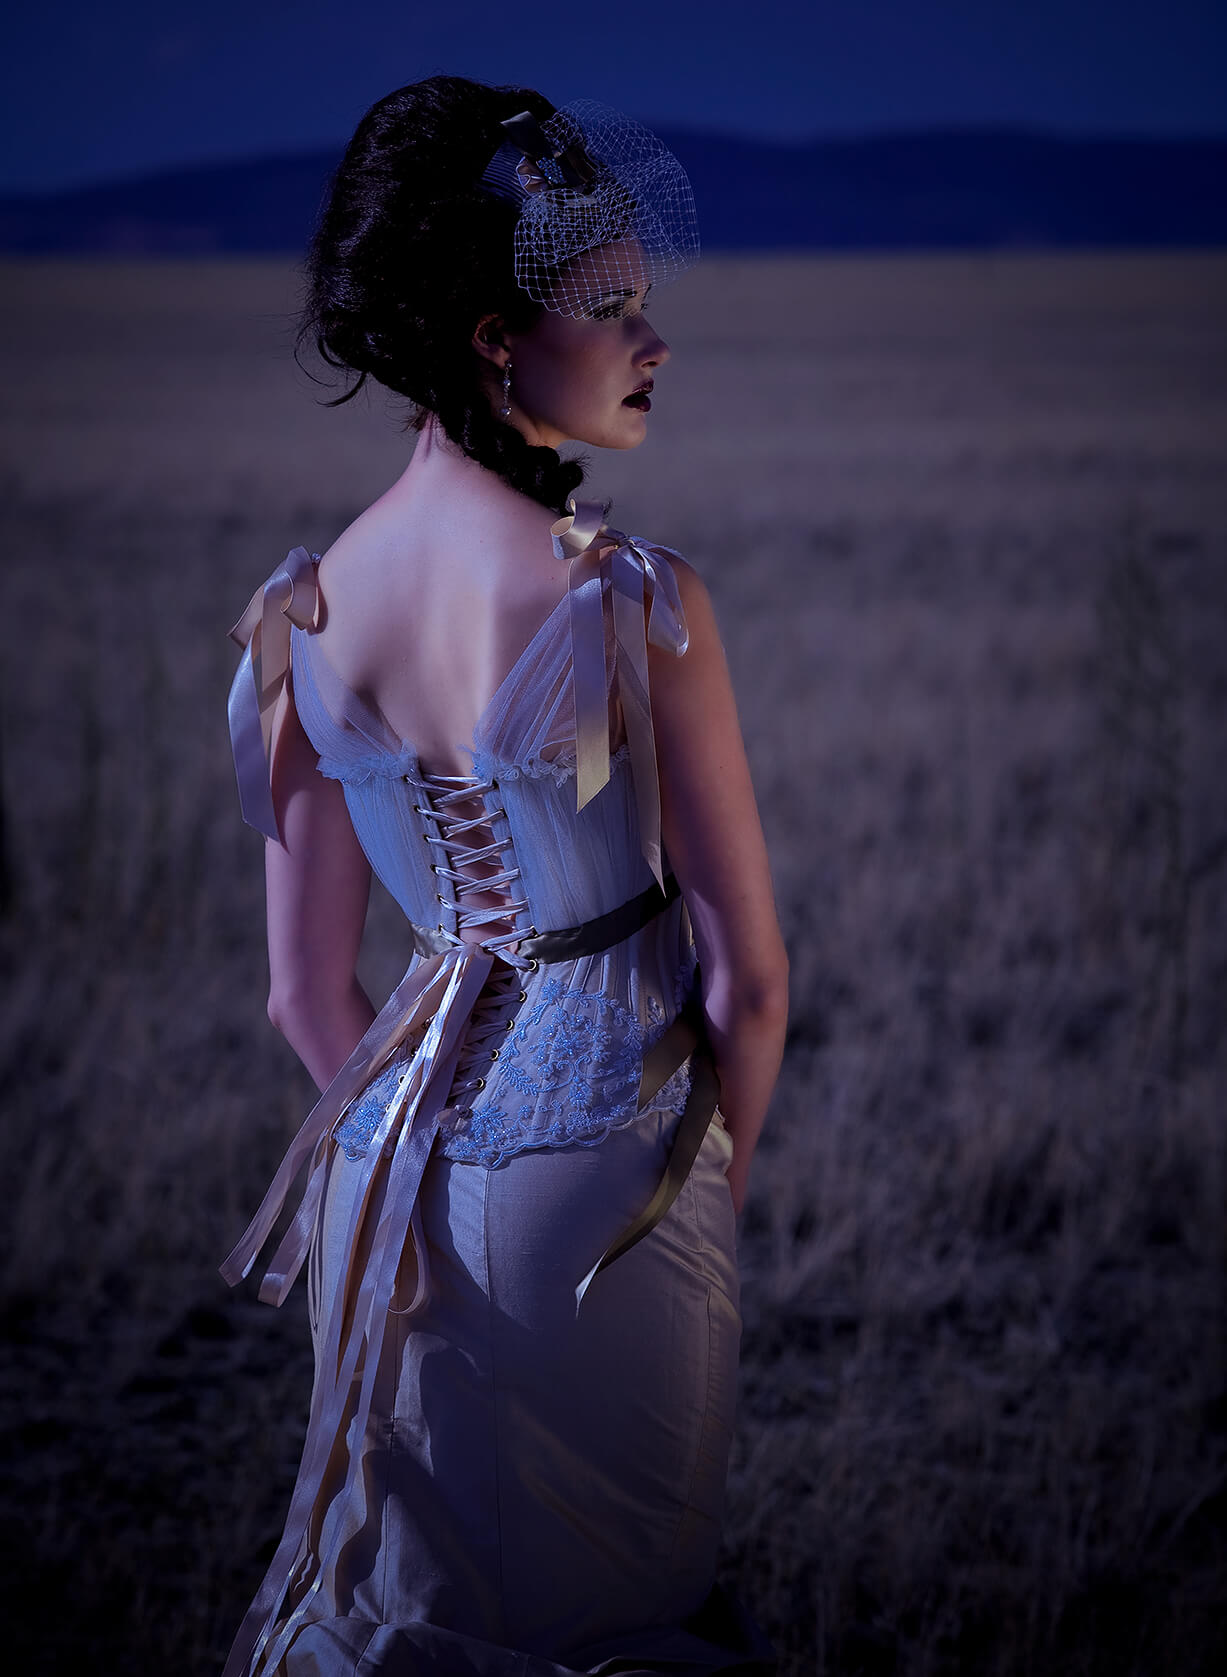 Bridal fashion by night showing back of corset dress